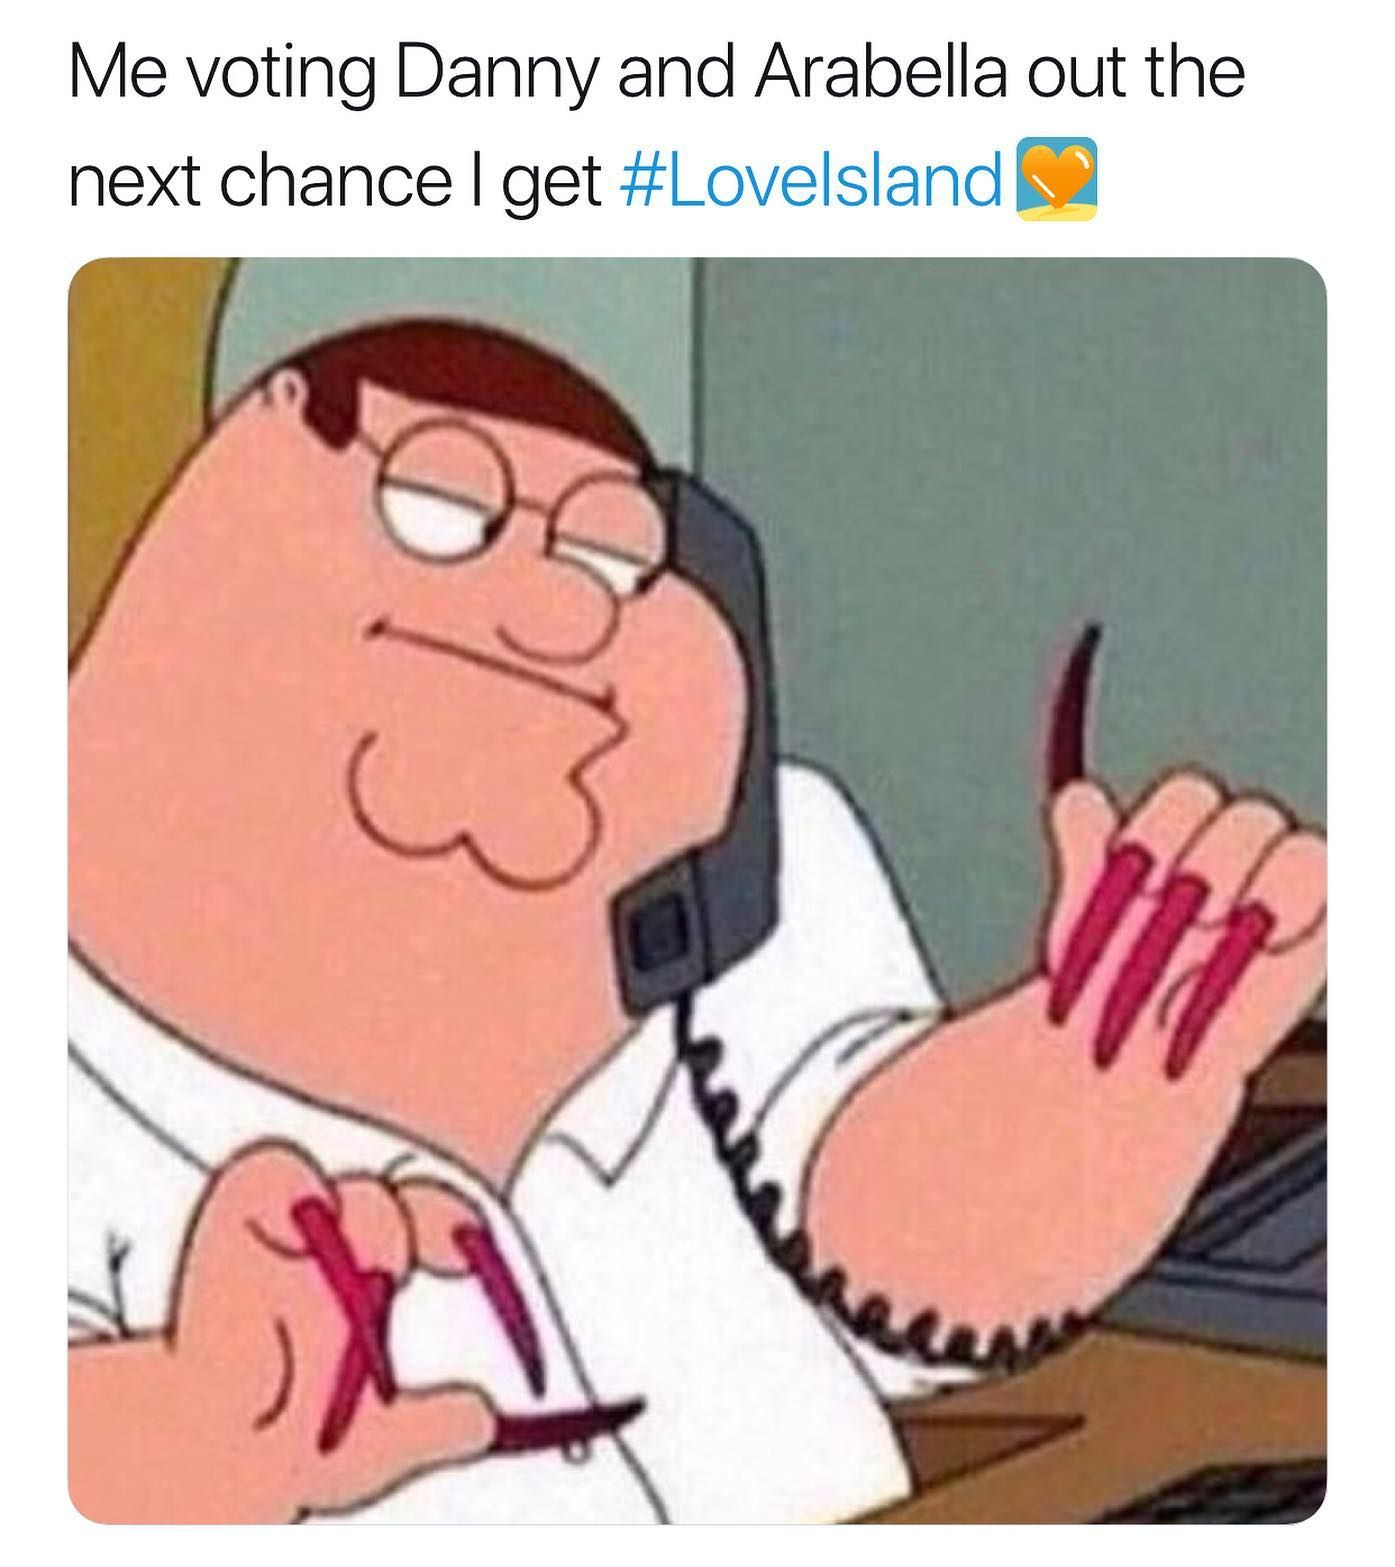 Image may contain: Love Island savage tweets, Love Island, memes, tweets, savage, online buzz, Danny, Arabella, Hand